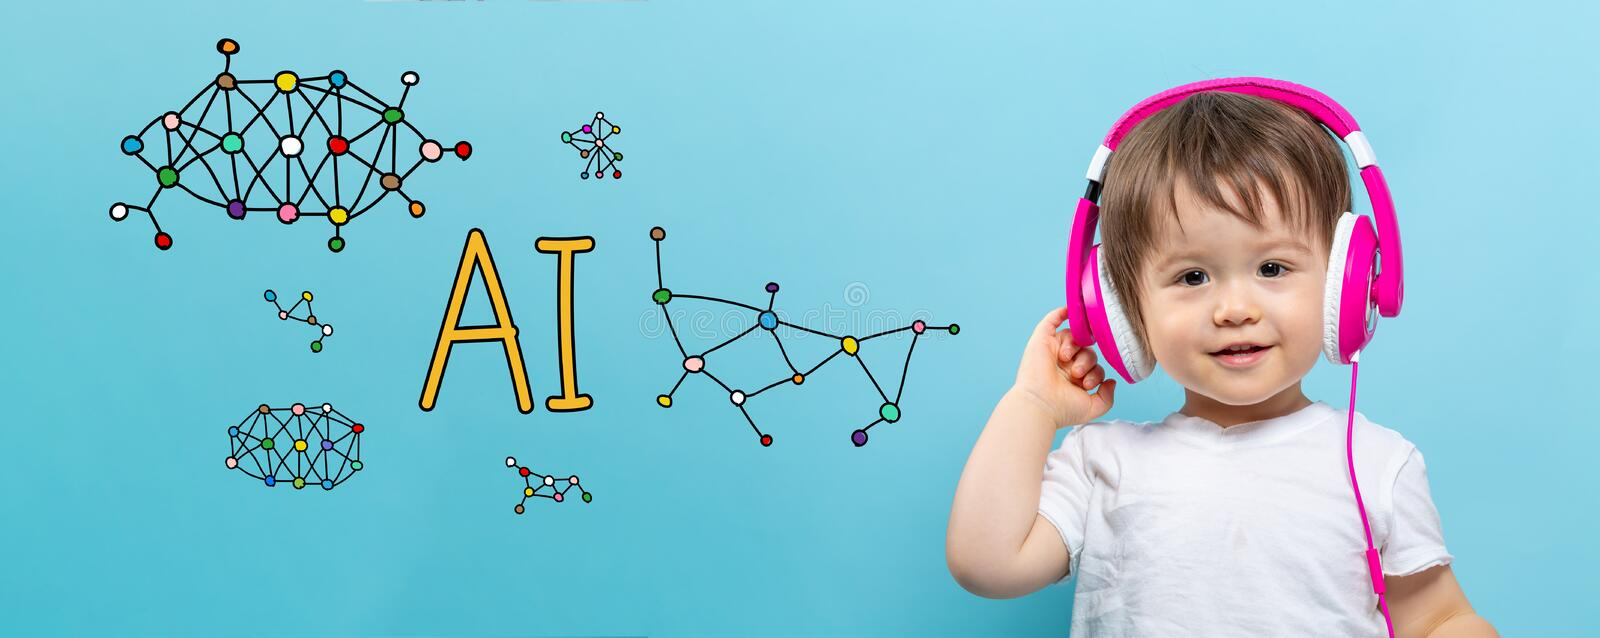 AI theme with toddler boy with headphones. On a blue background royalty free stock photo